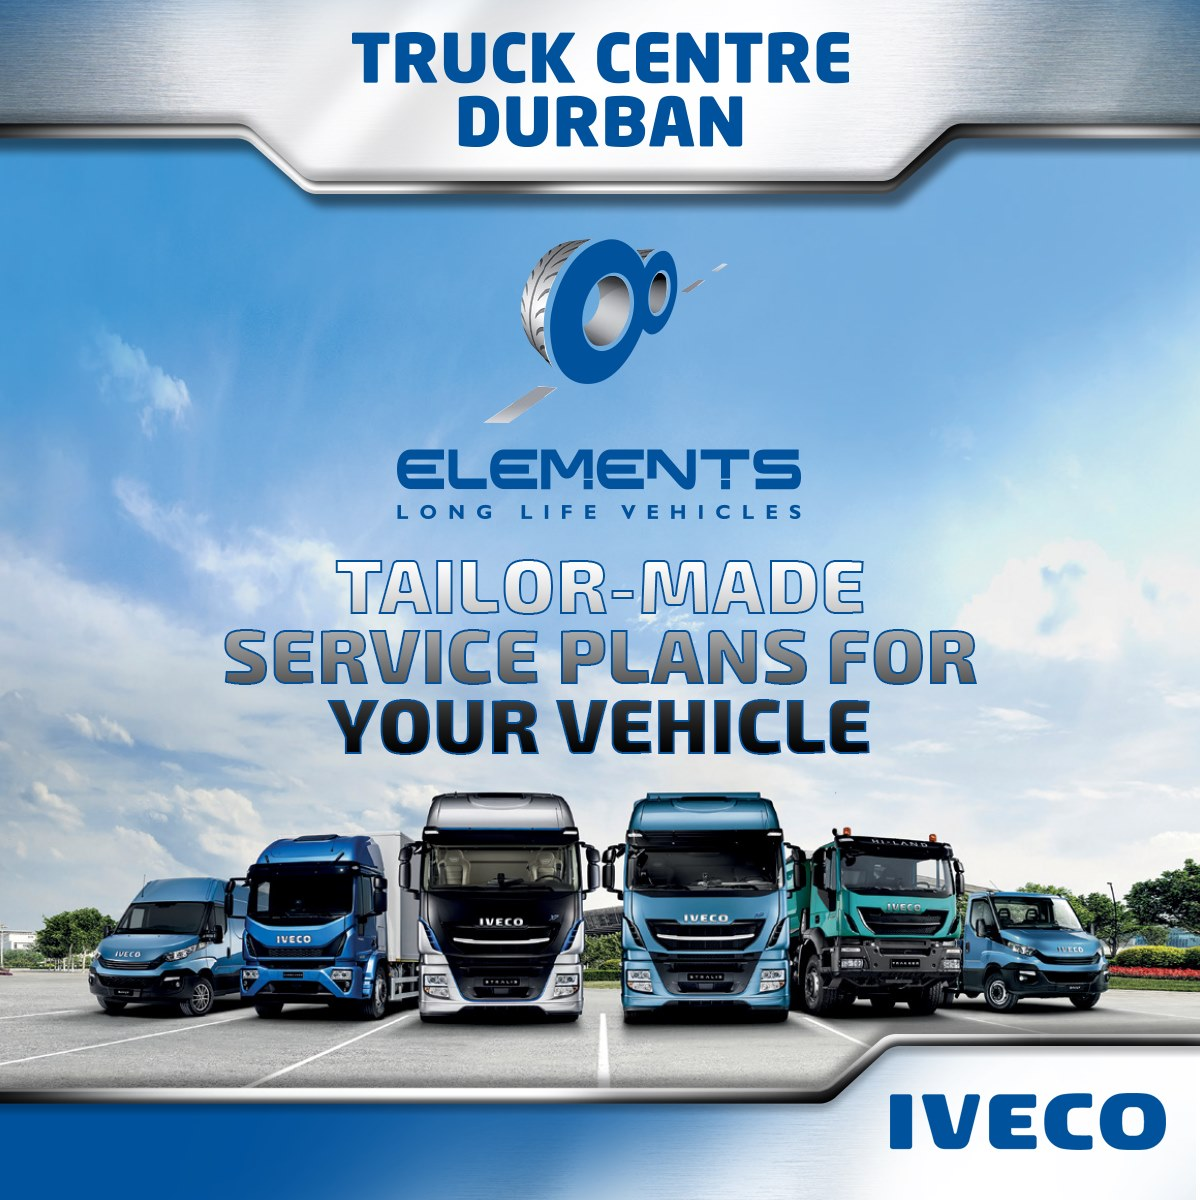 Tailor-Made-Service-Plans-For-Your-Vehicle - Truck Centre Durban